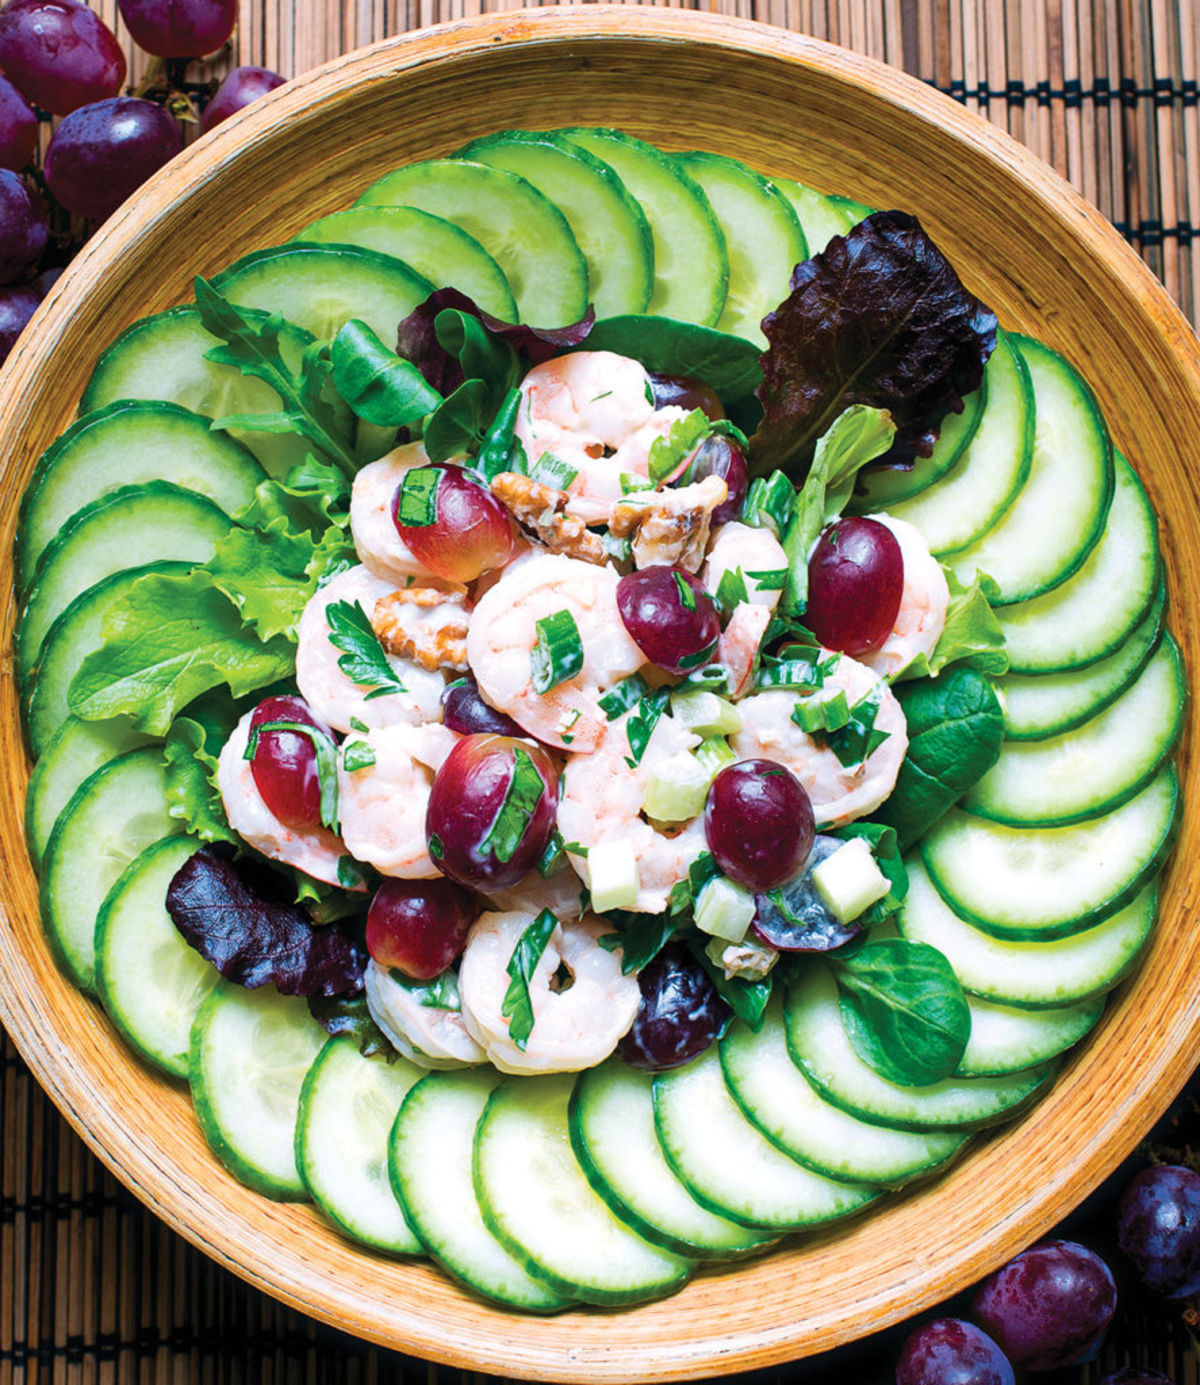 shrimp salad with grapes and cucumbers